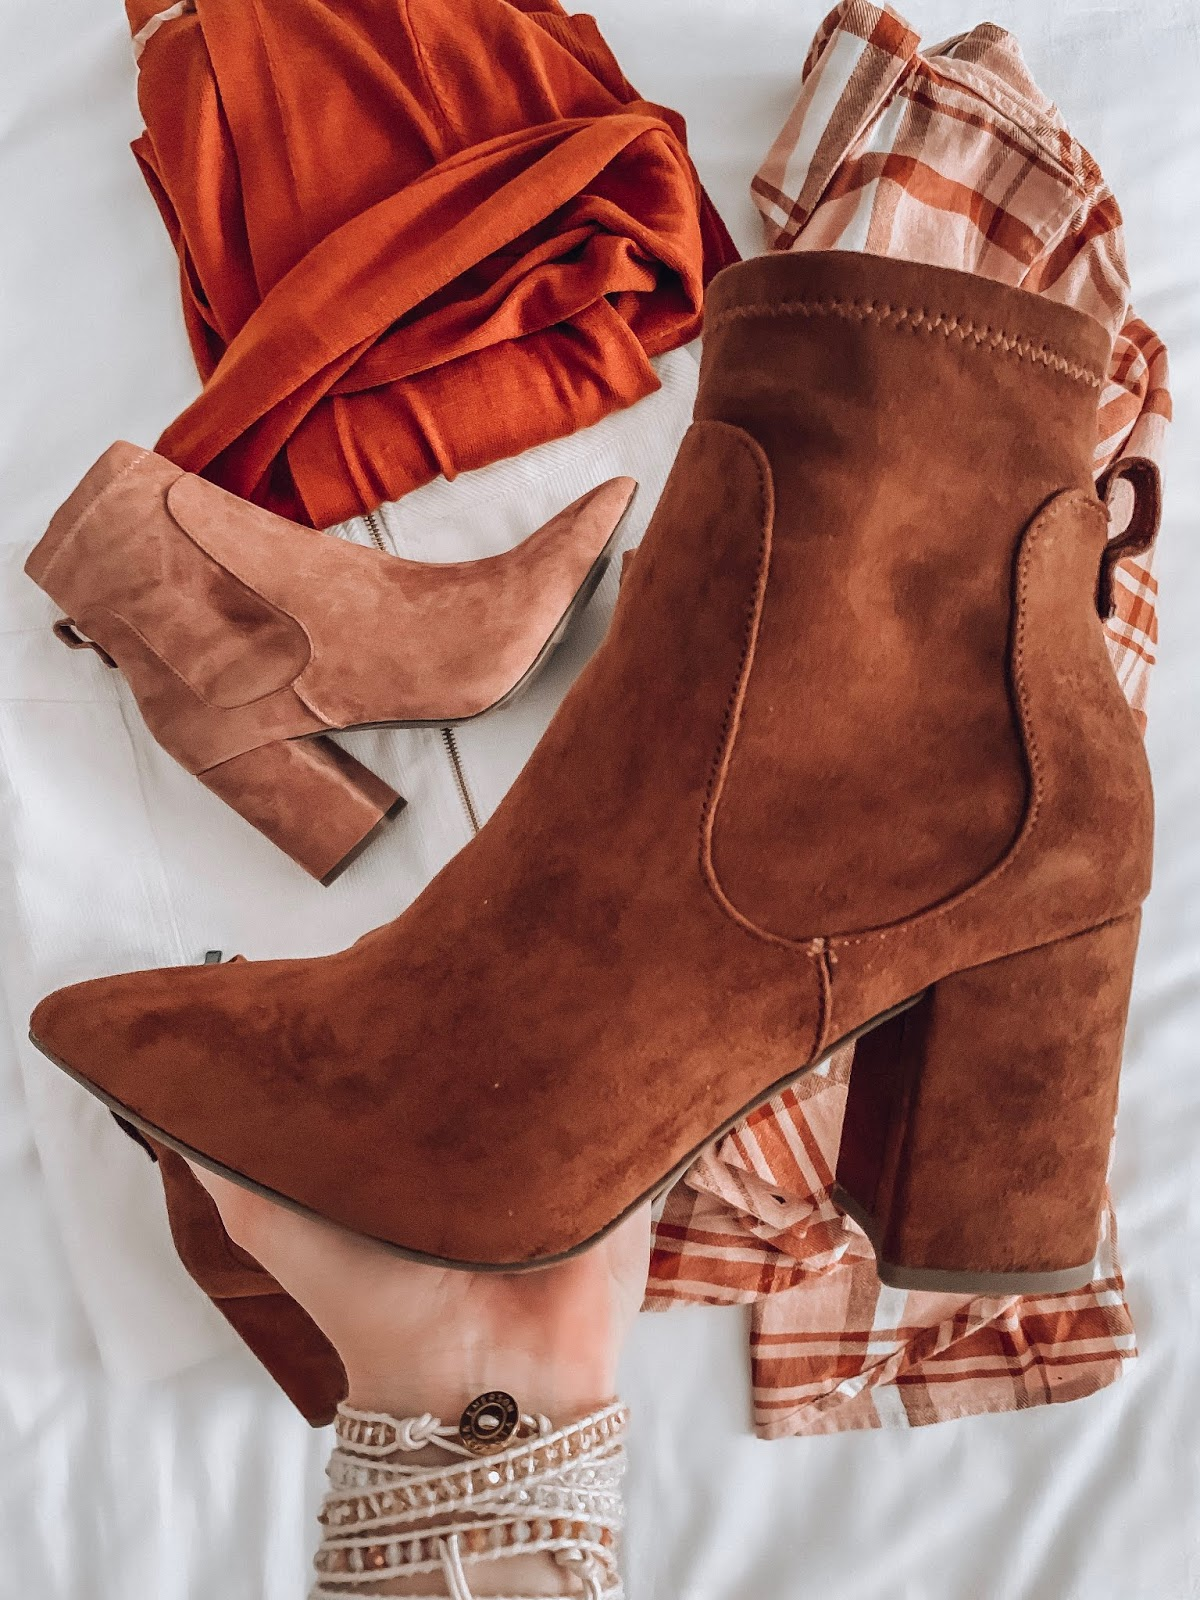 Target Fall Finds: Part Three - Target Style Pointed Toe Sock Booties Under $40 - Something Delightful Blog #FallStyle #TargetStye